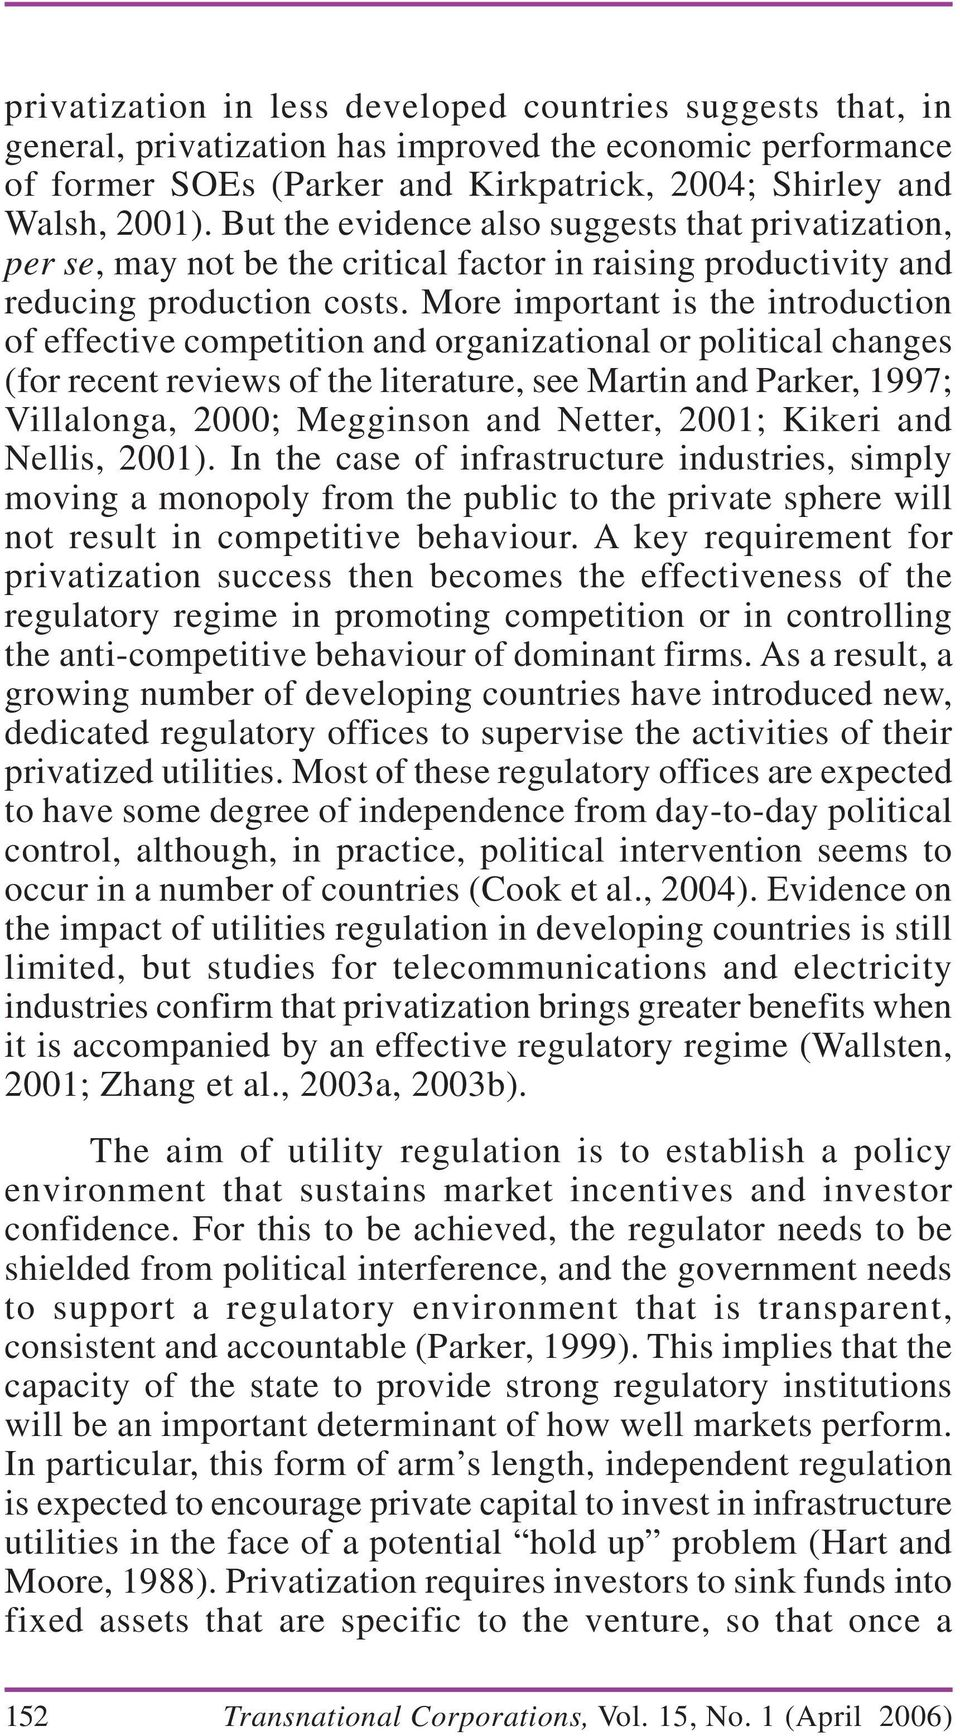 More important is the introduction of effective competition and organizational or political changes (for recent reviews of the literature, see Martin and Parker, 1997; Villalonga, 2000; Megginson and